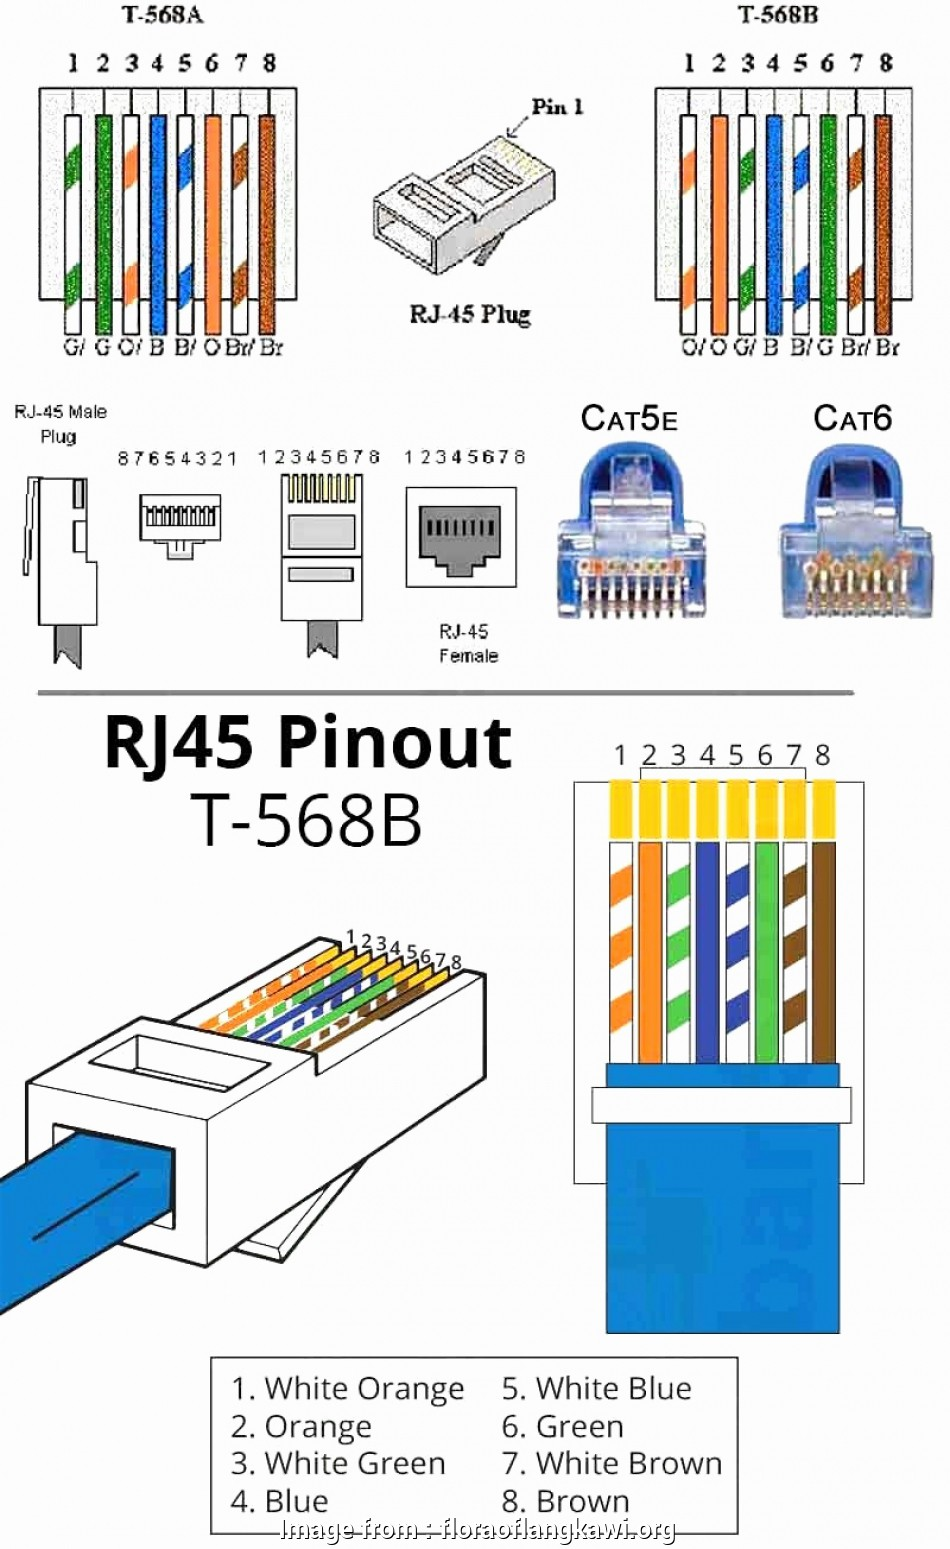 rj45 wiring diagram t568a Cat6 Network Cable Wiring Diagram Elegant T568a T568b Rj45 Cat5e Cat6 Ethernet Cable Wiring Diagram Home Of Cat6 Network Cable Wiring Diagram In Cat6 Wire 12 Simple Rj45 Wiring Diagram T568A Images